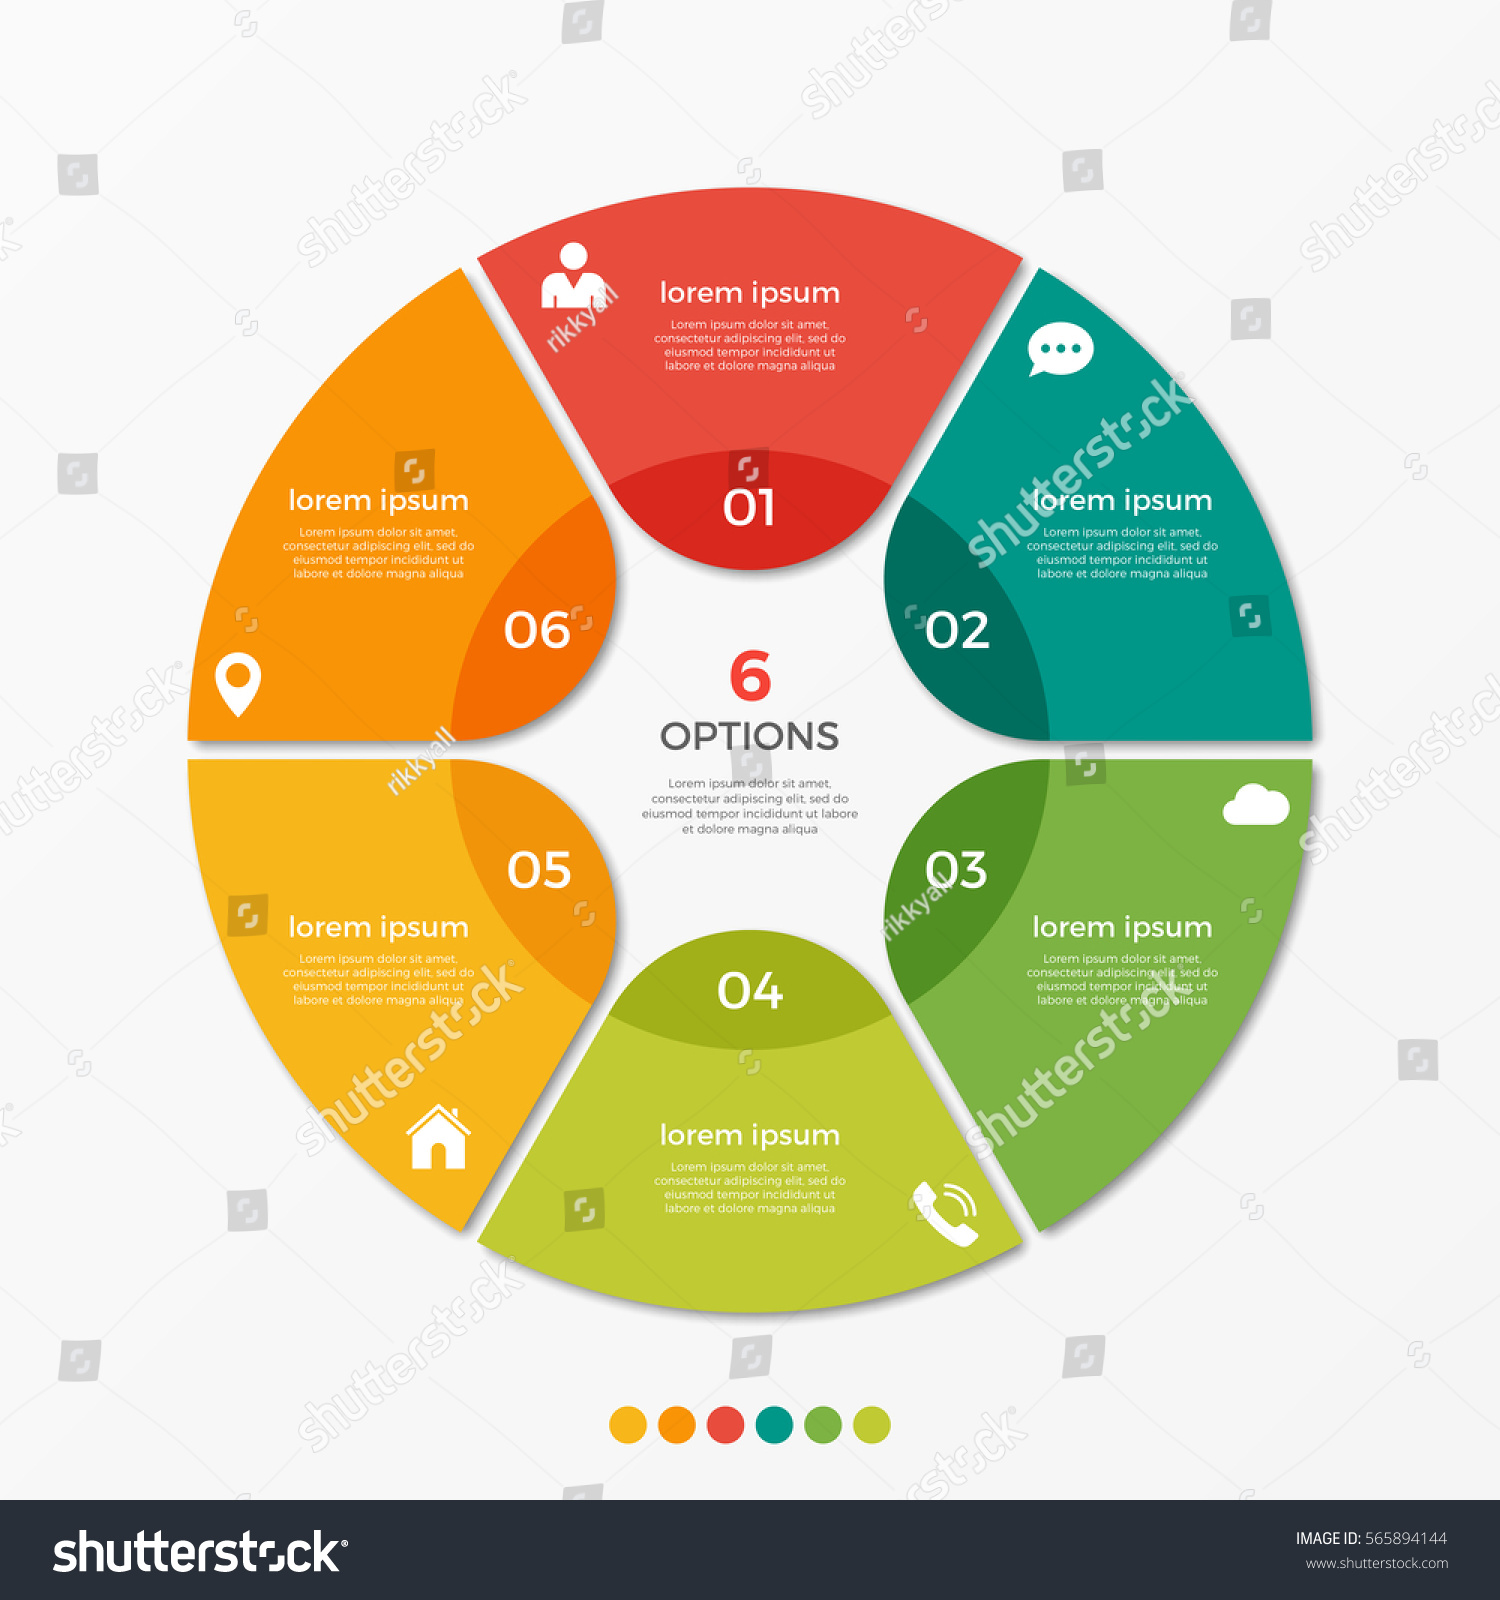 circle chart infographic template 6 options のベクター画像素材